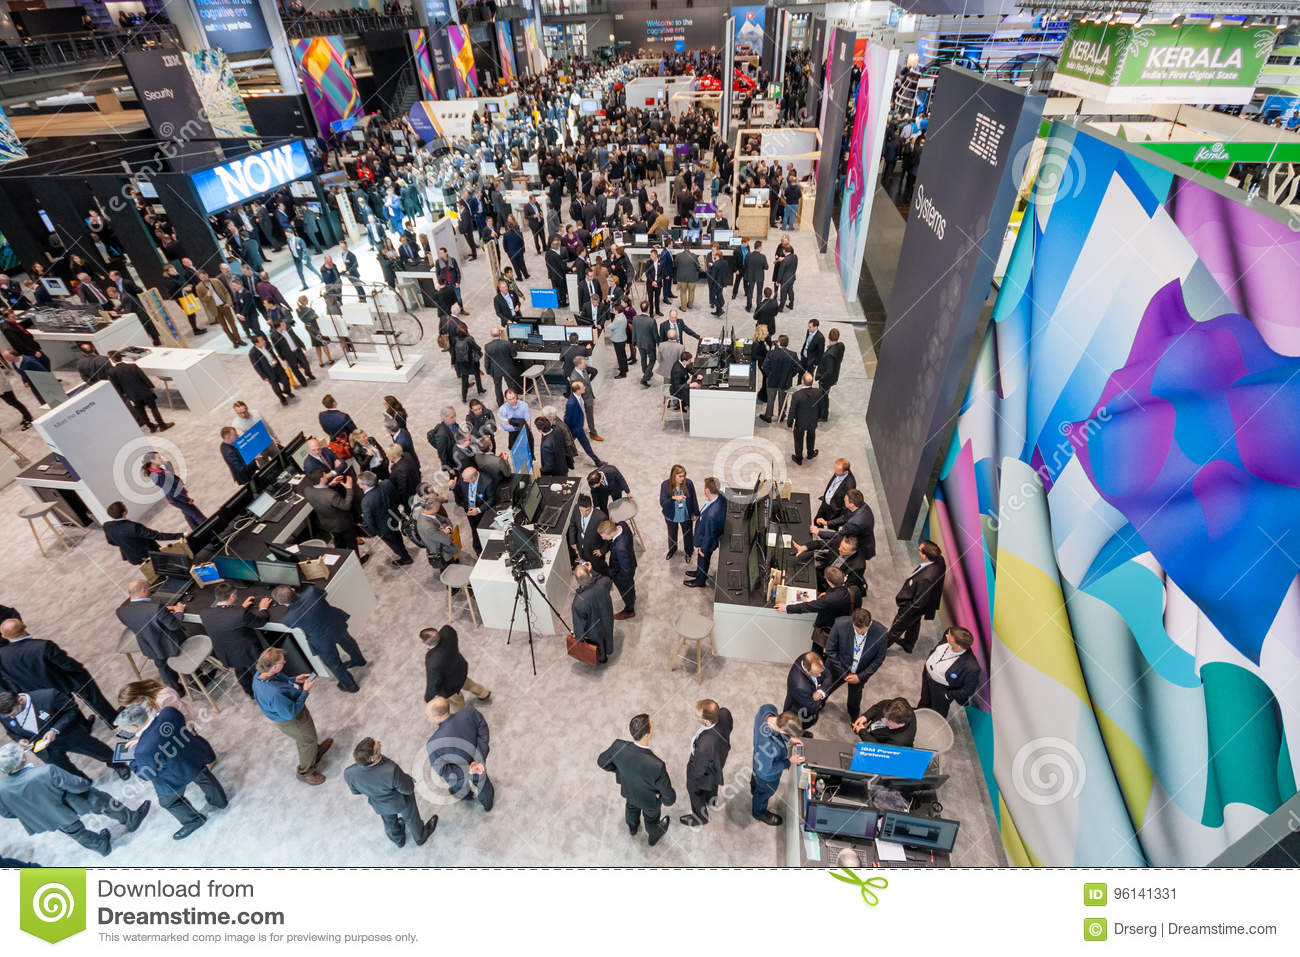 Hall 2 at CeBIT information technology trade show